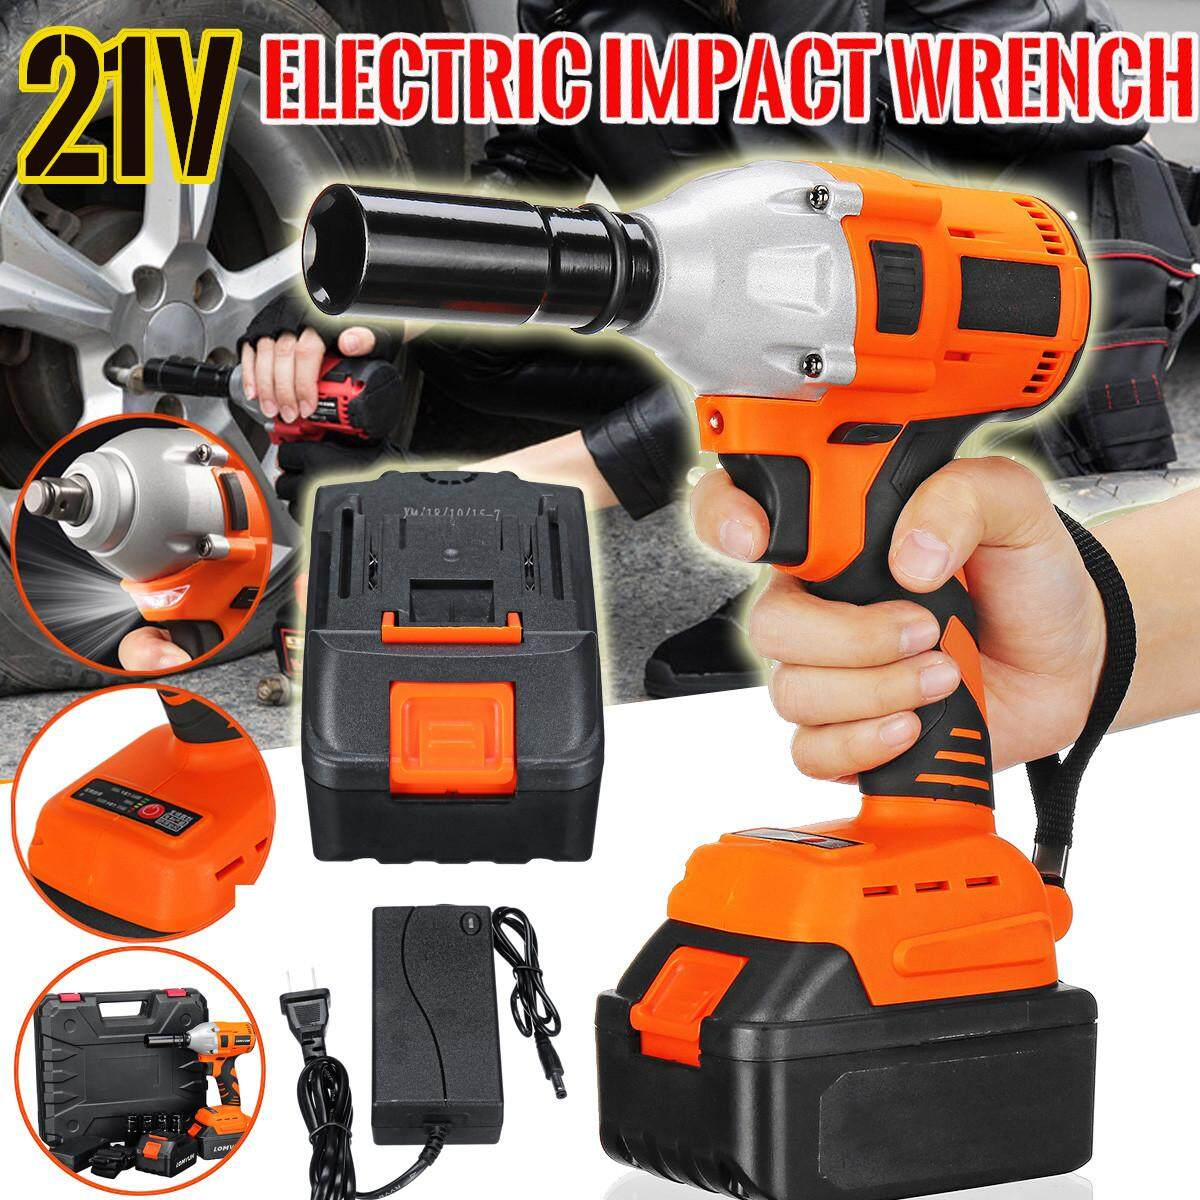 21V 16000mAh Brushless Impact Wrench Li-Ion Battery Electric Shelf Wrench